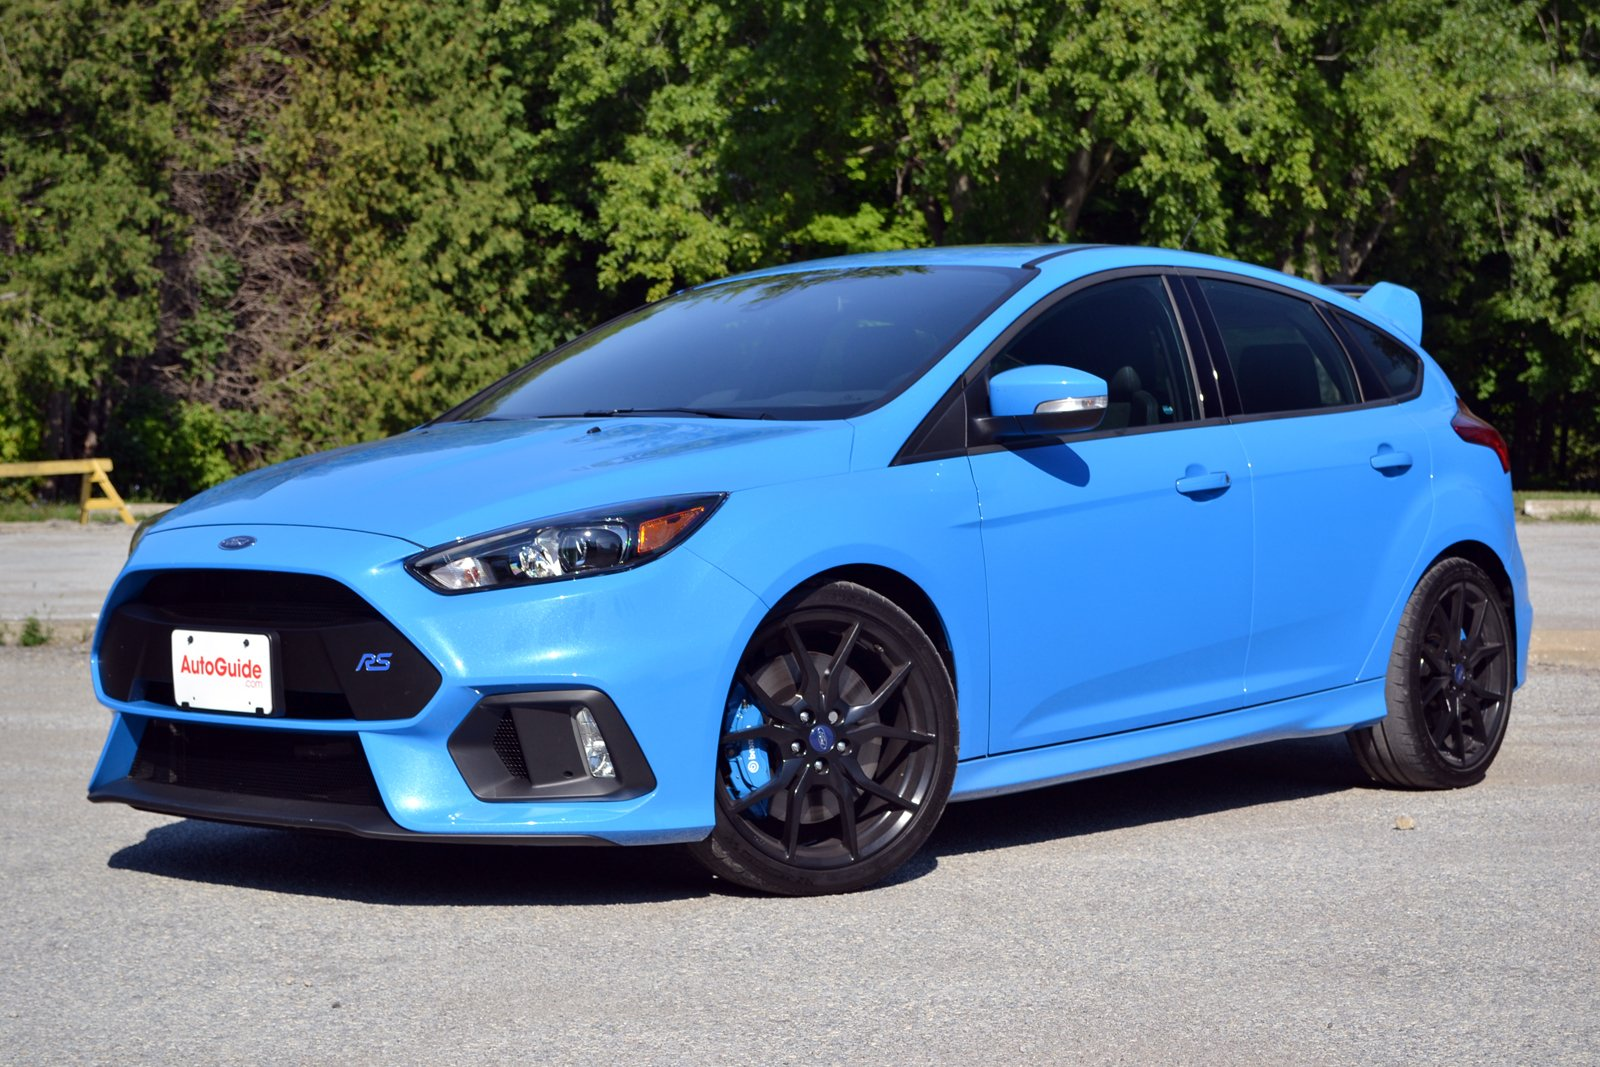 hatchback ratings focus reviews safety exterior ford price new coupe base rs photos